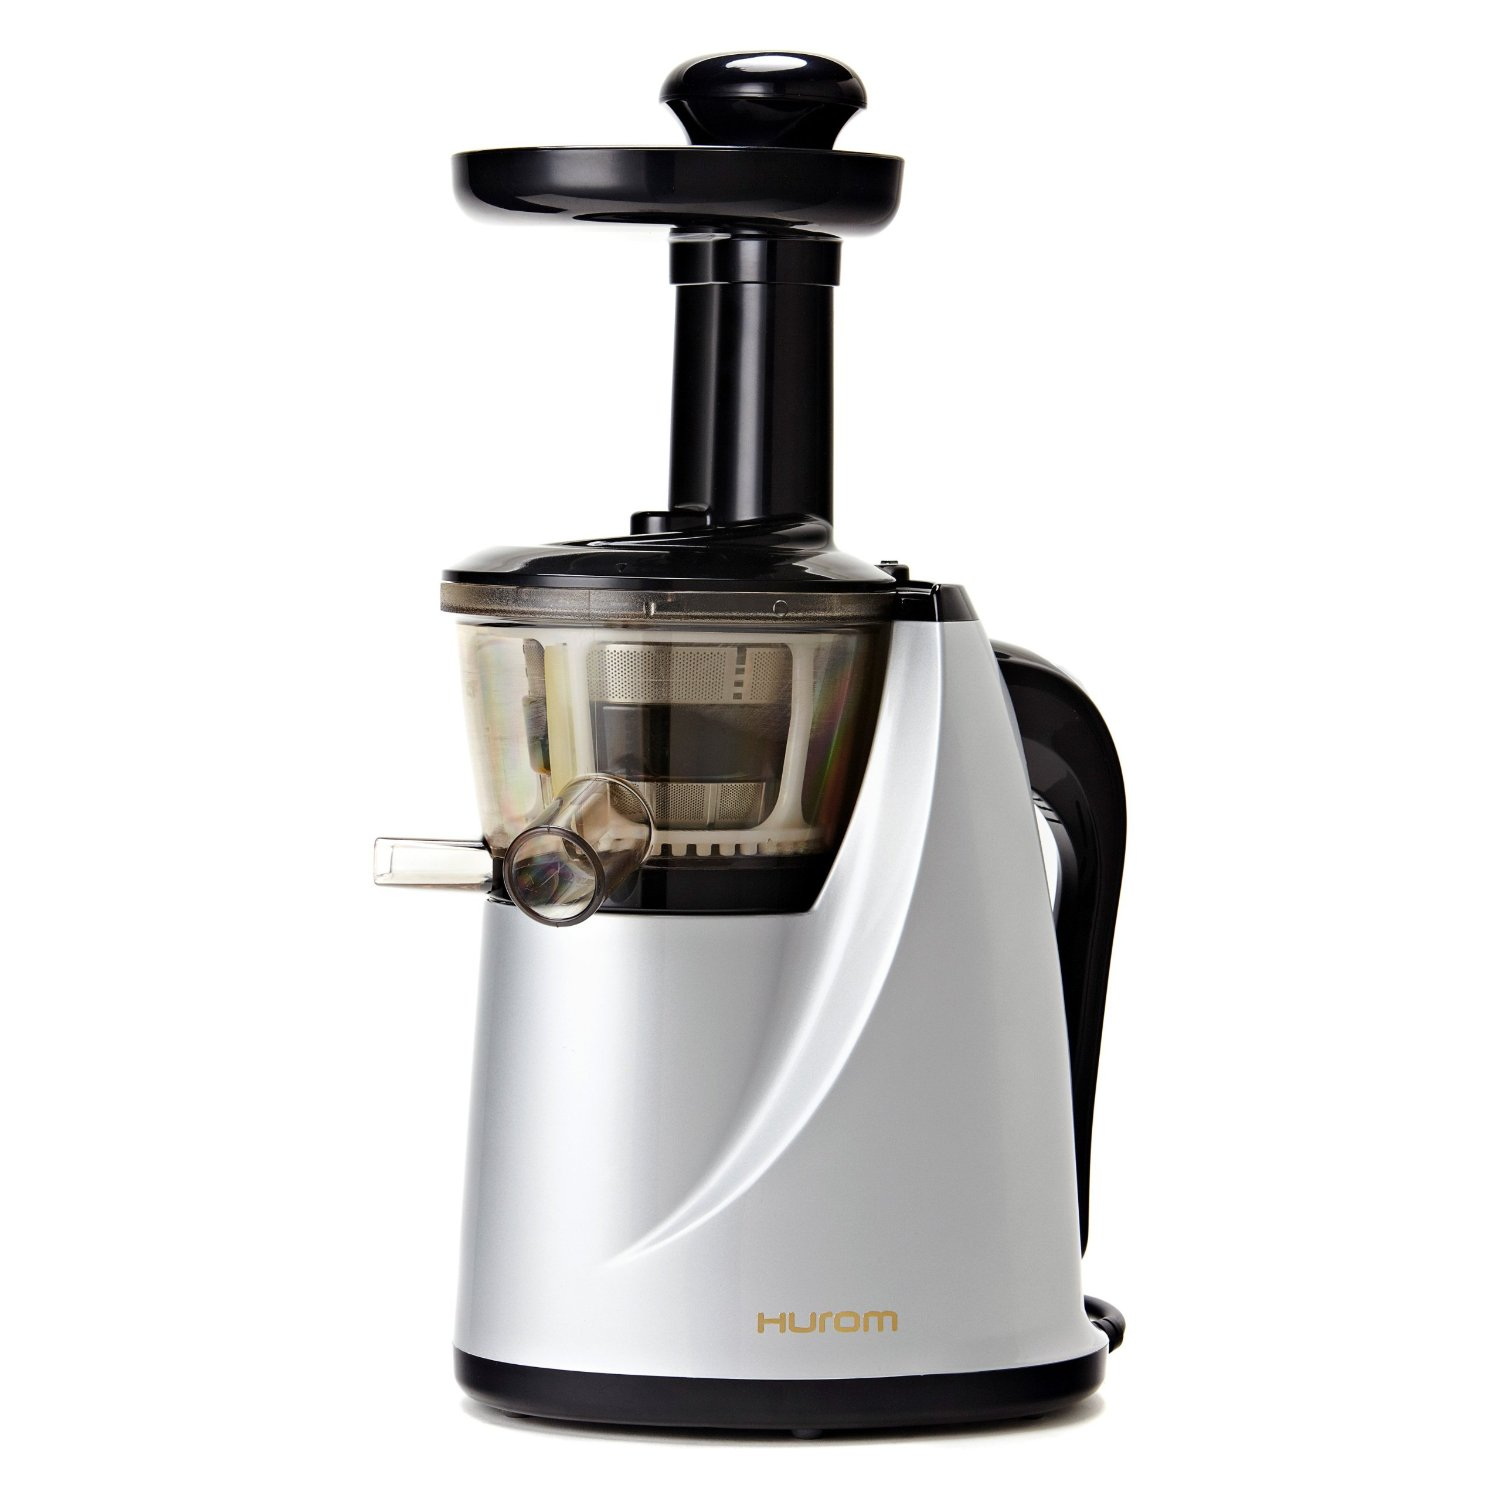 Koryo Slow Juicer Review : Hurom HU-100 Masticating Slow Juicer Review - Best Cold Press Juicers